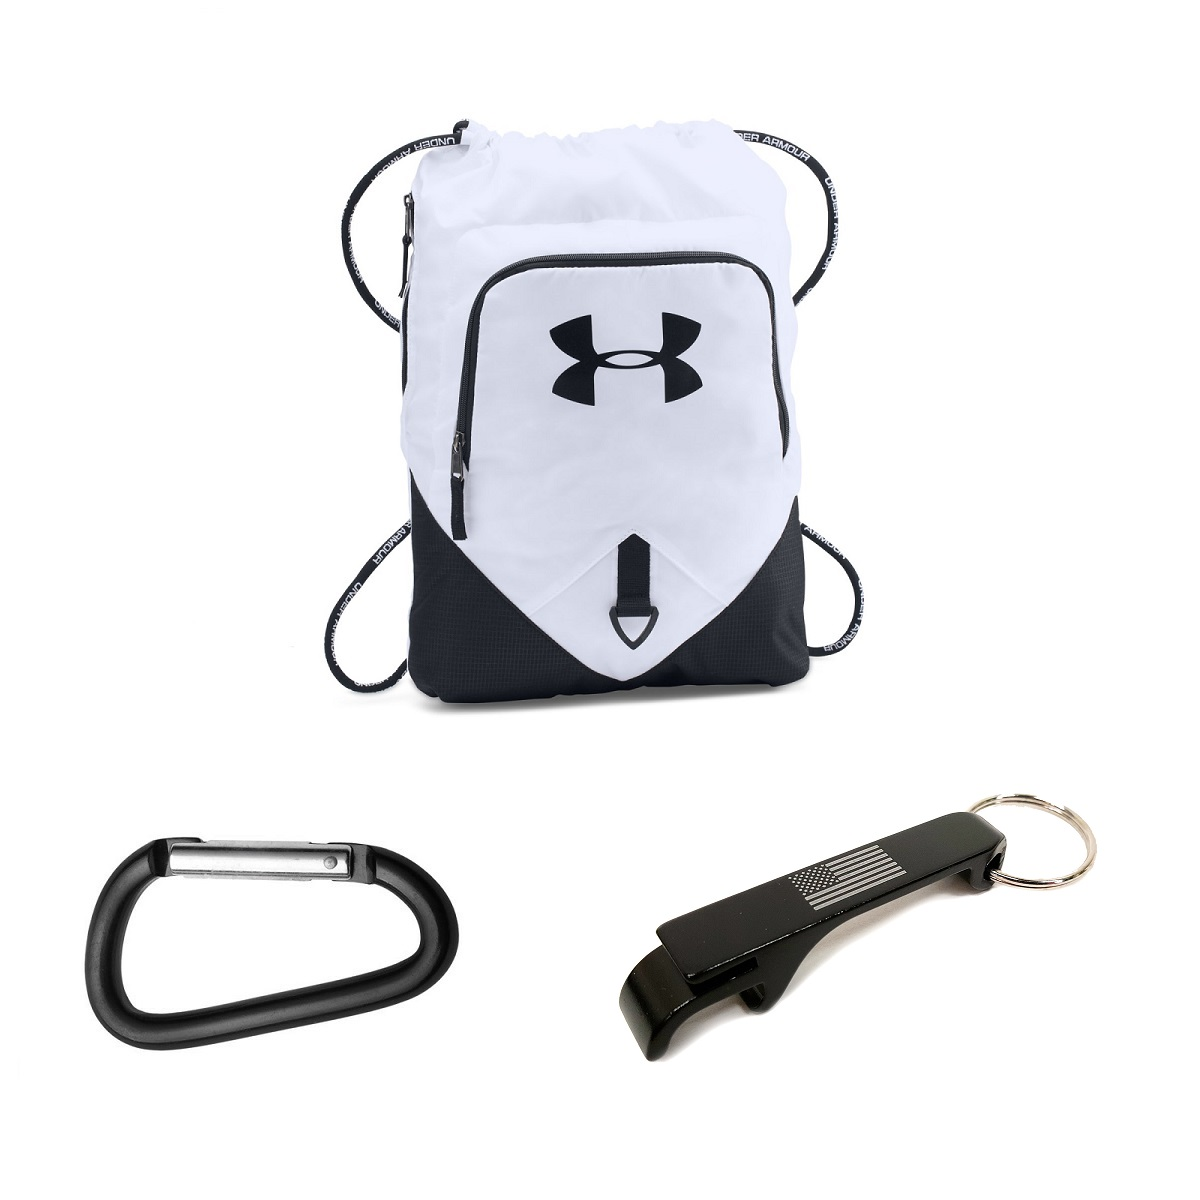 996ca493a6f Under Armour Undeniable Sackpack w/ USA Bottle Opener + Carabiner -  White/Black